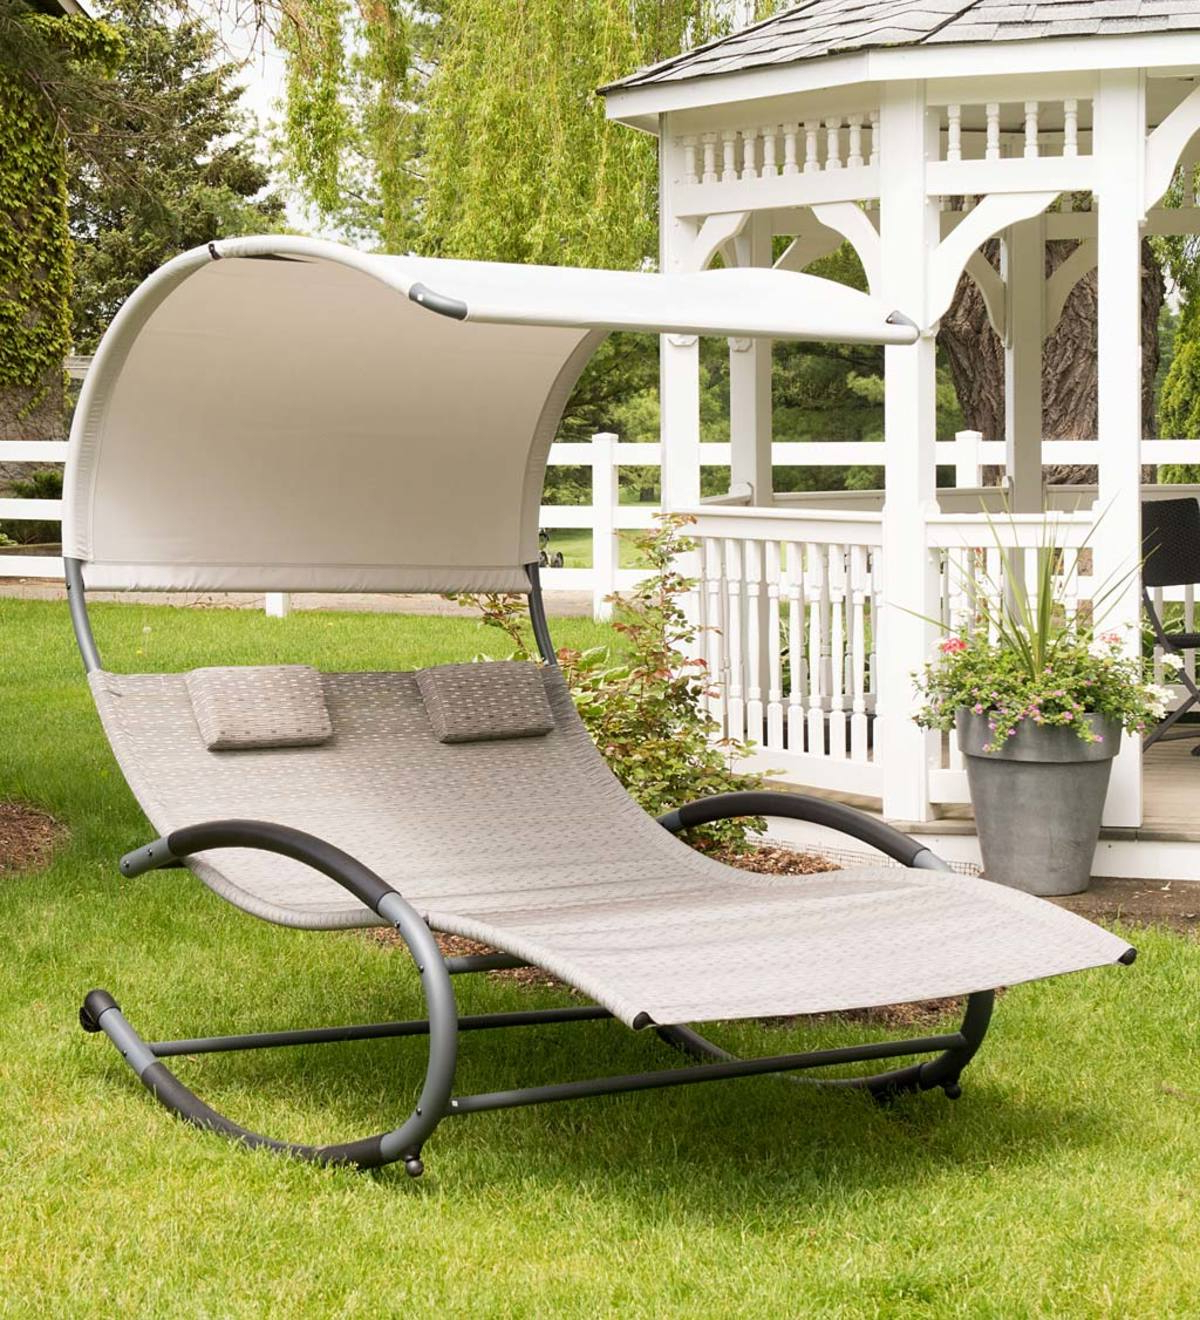 Resin Wicker Multi Position Double Patio Chaise Lounges Intended For Famous Outdoor Double Chaise Lounge Rocker With Shade Awning (View 21 of 25)